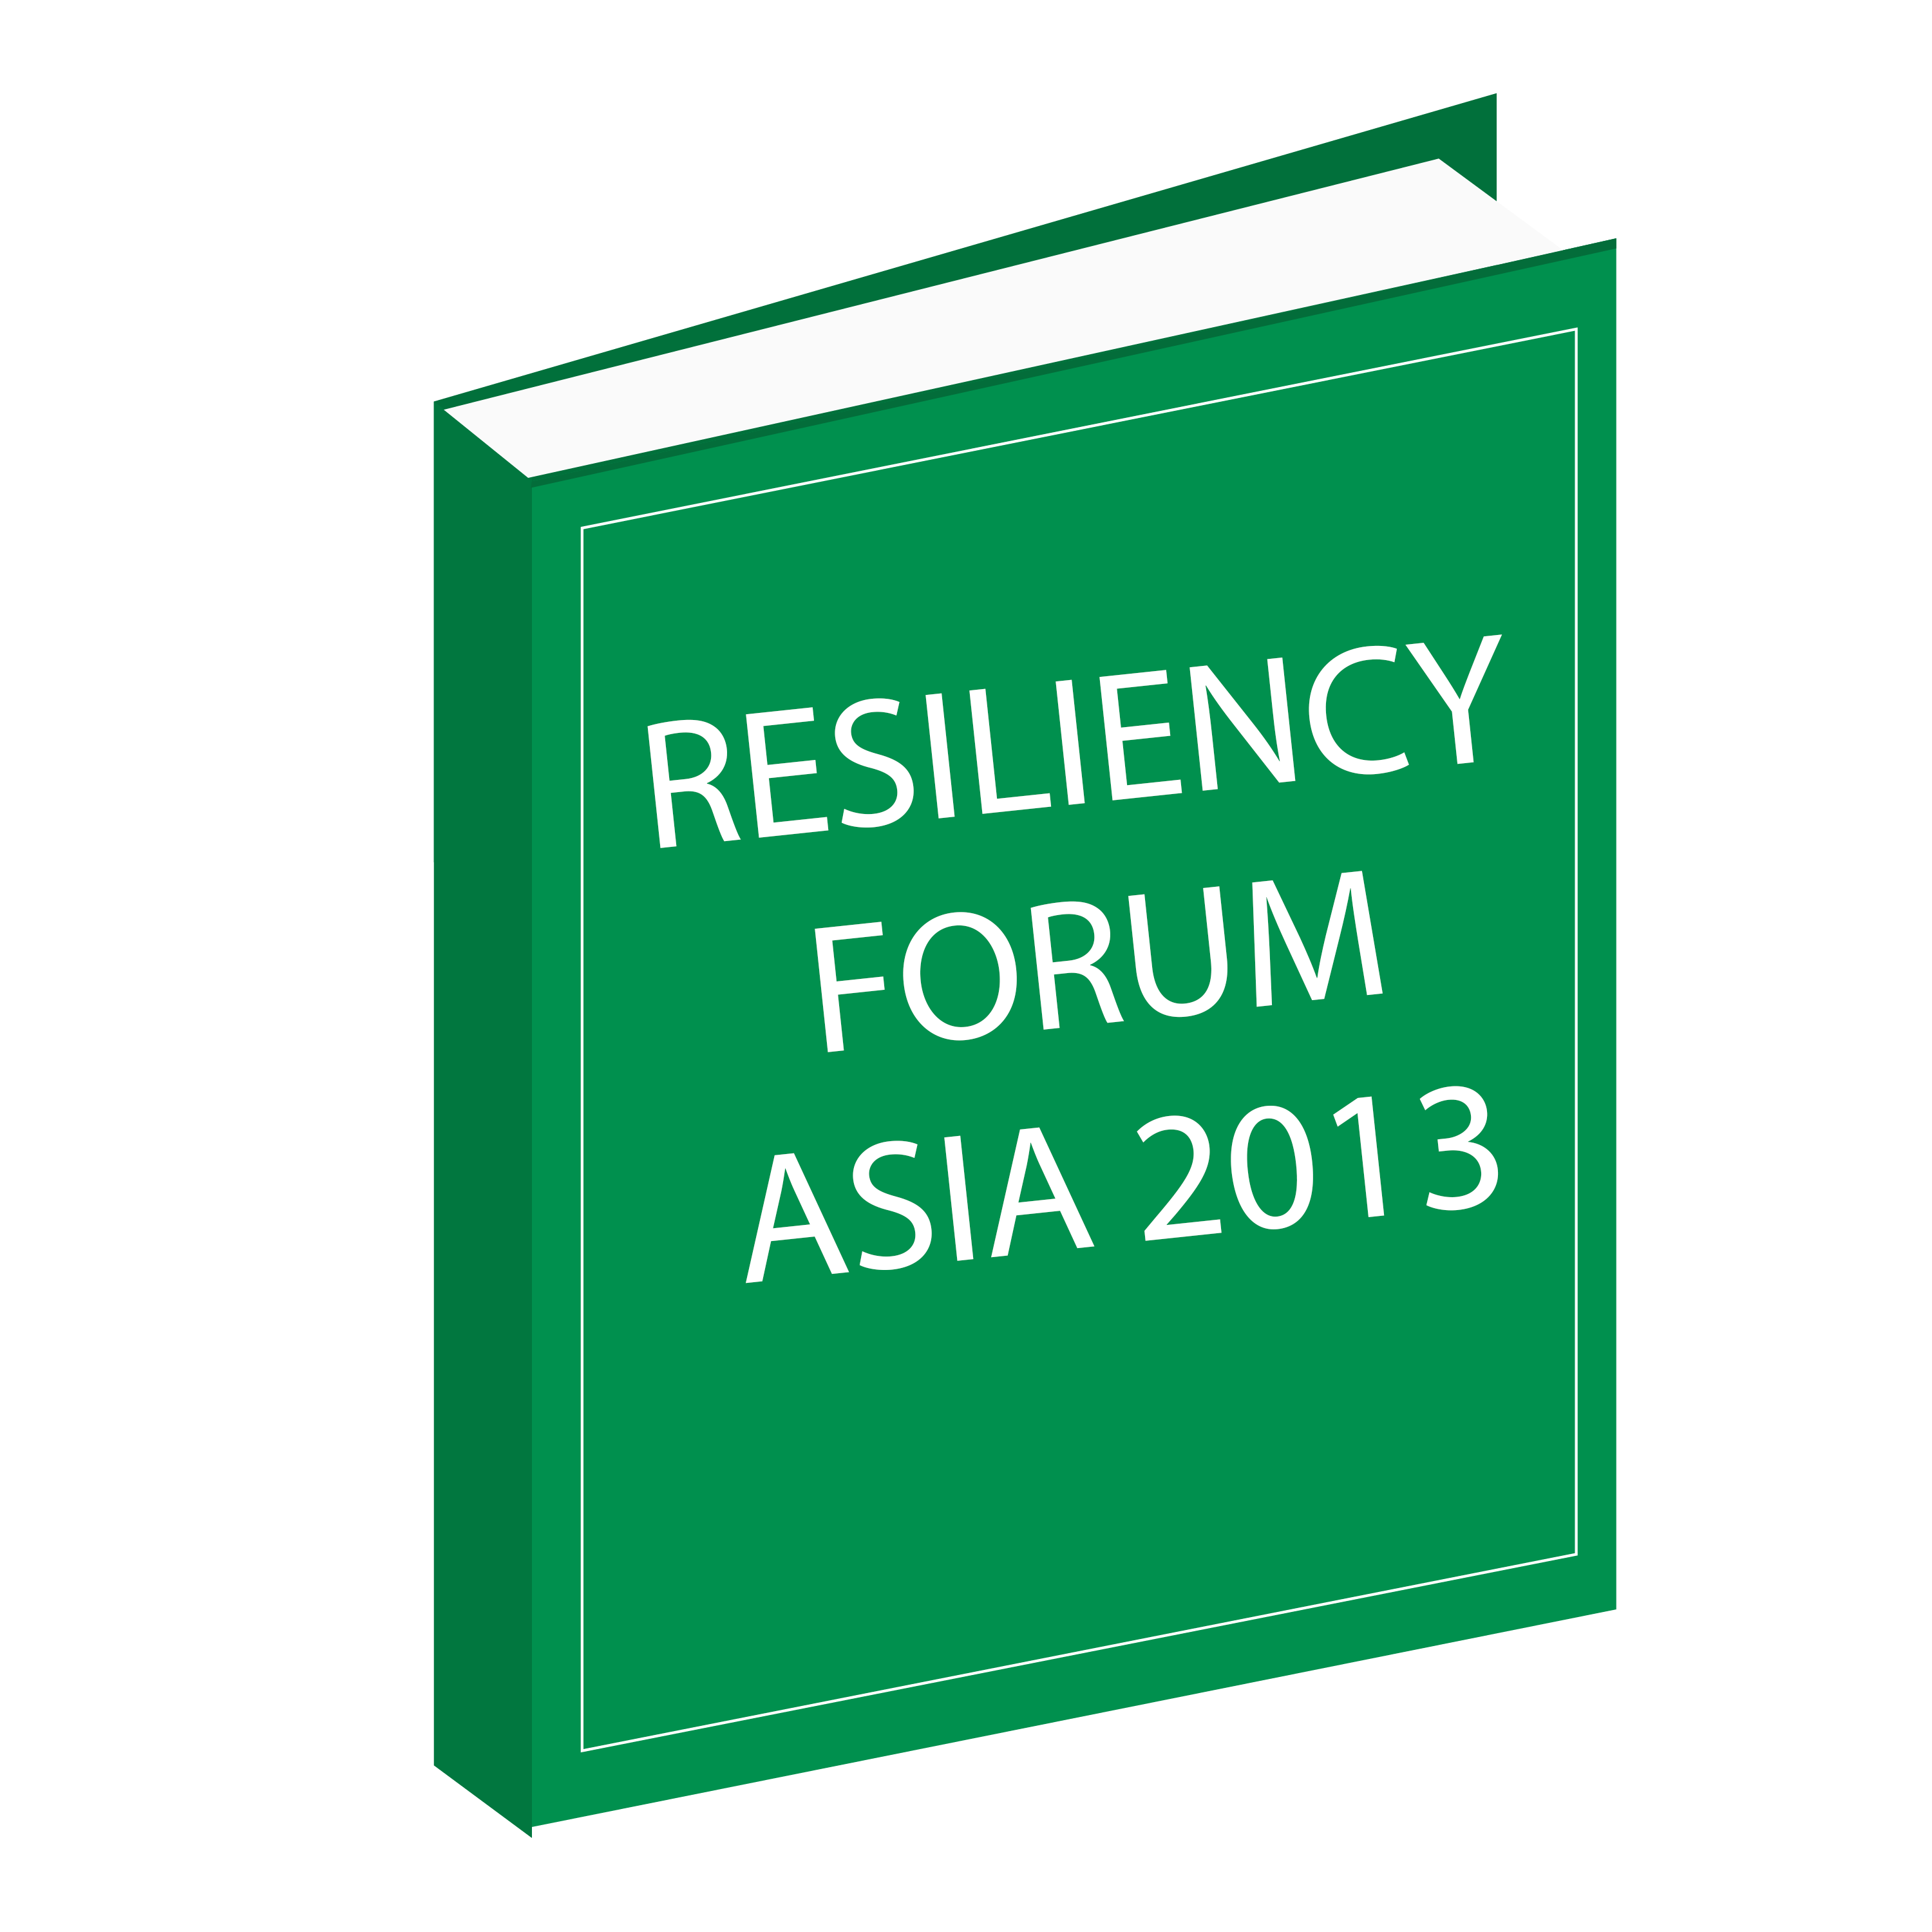 RESILIENCY FORUM ASIA 2013